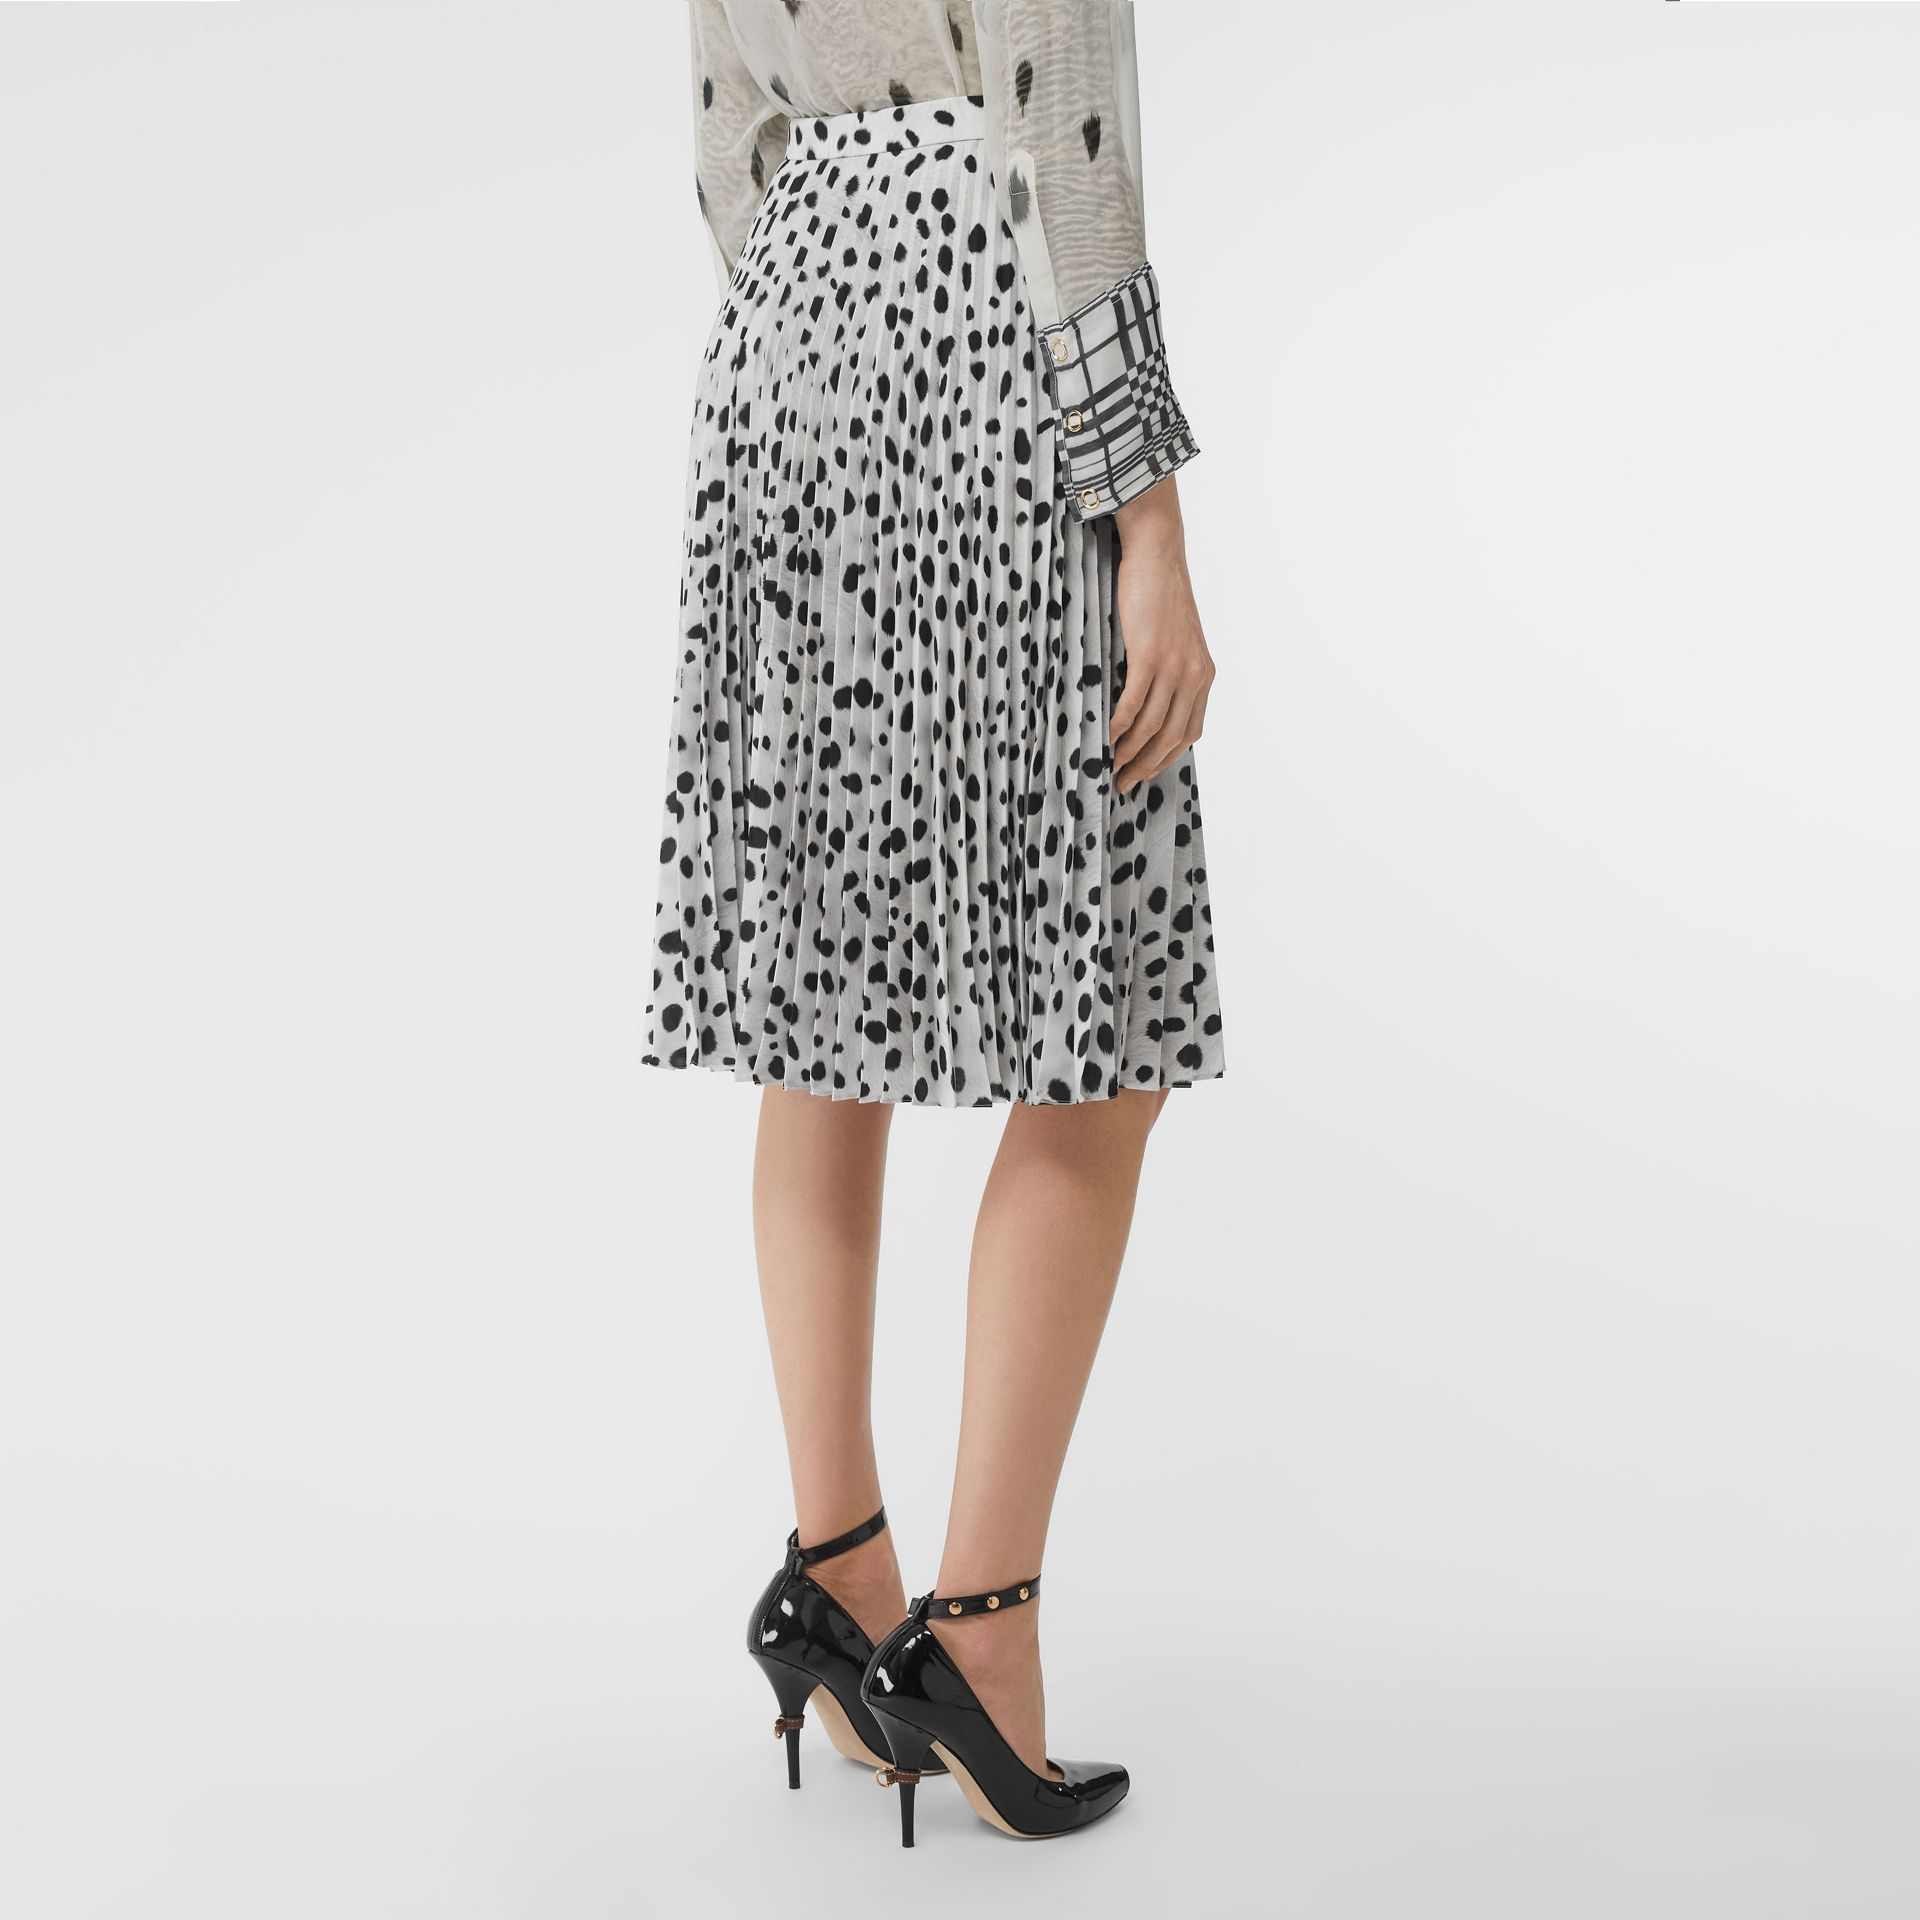 Dalmatian Print Crepe Pleated Skirt in Black/white - Women | Burberry United States - gallery image 2